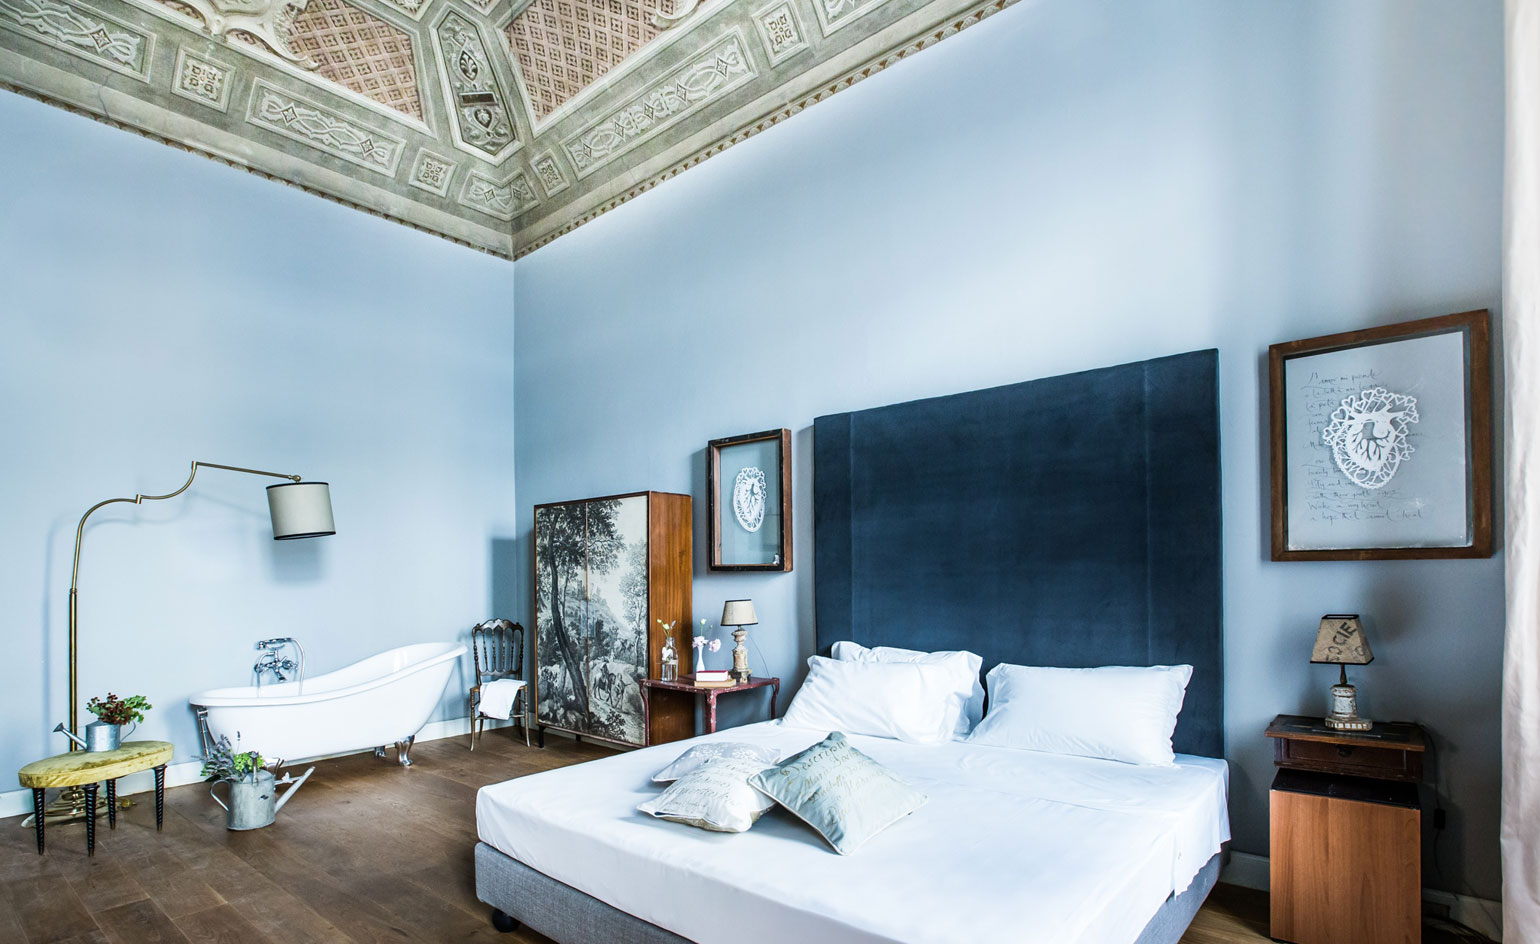 Soprarno suites hotel review florence italy wallpaper for Hotel design florence italie